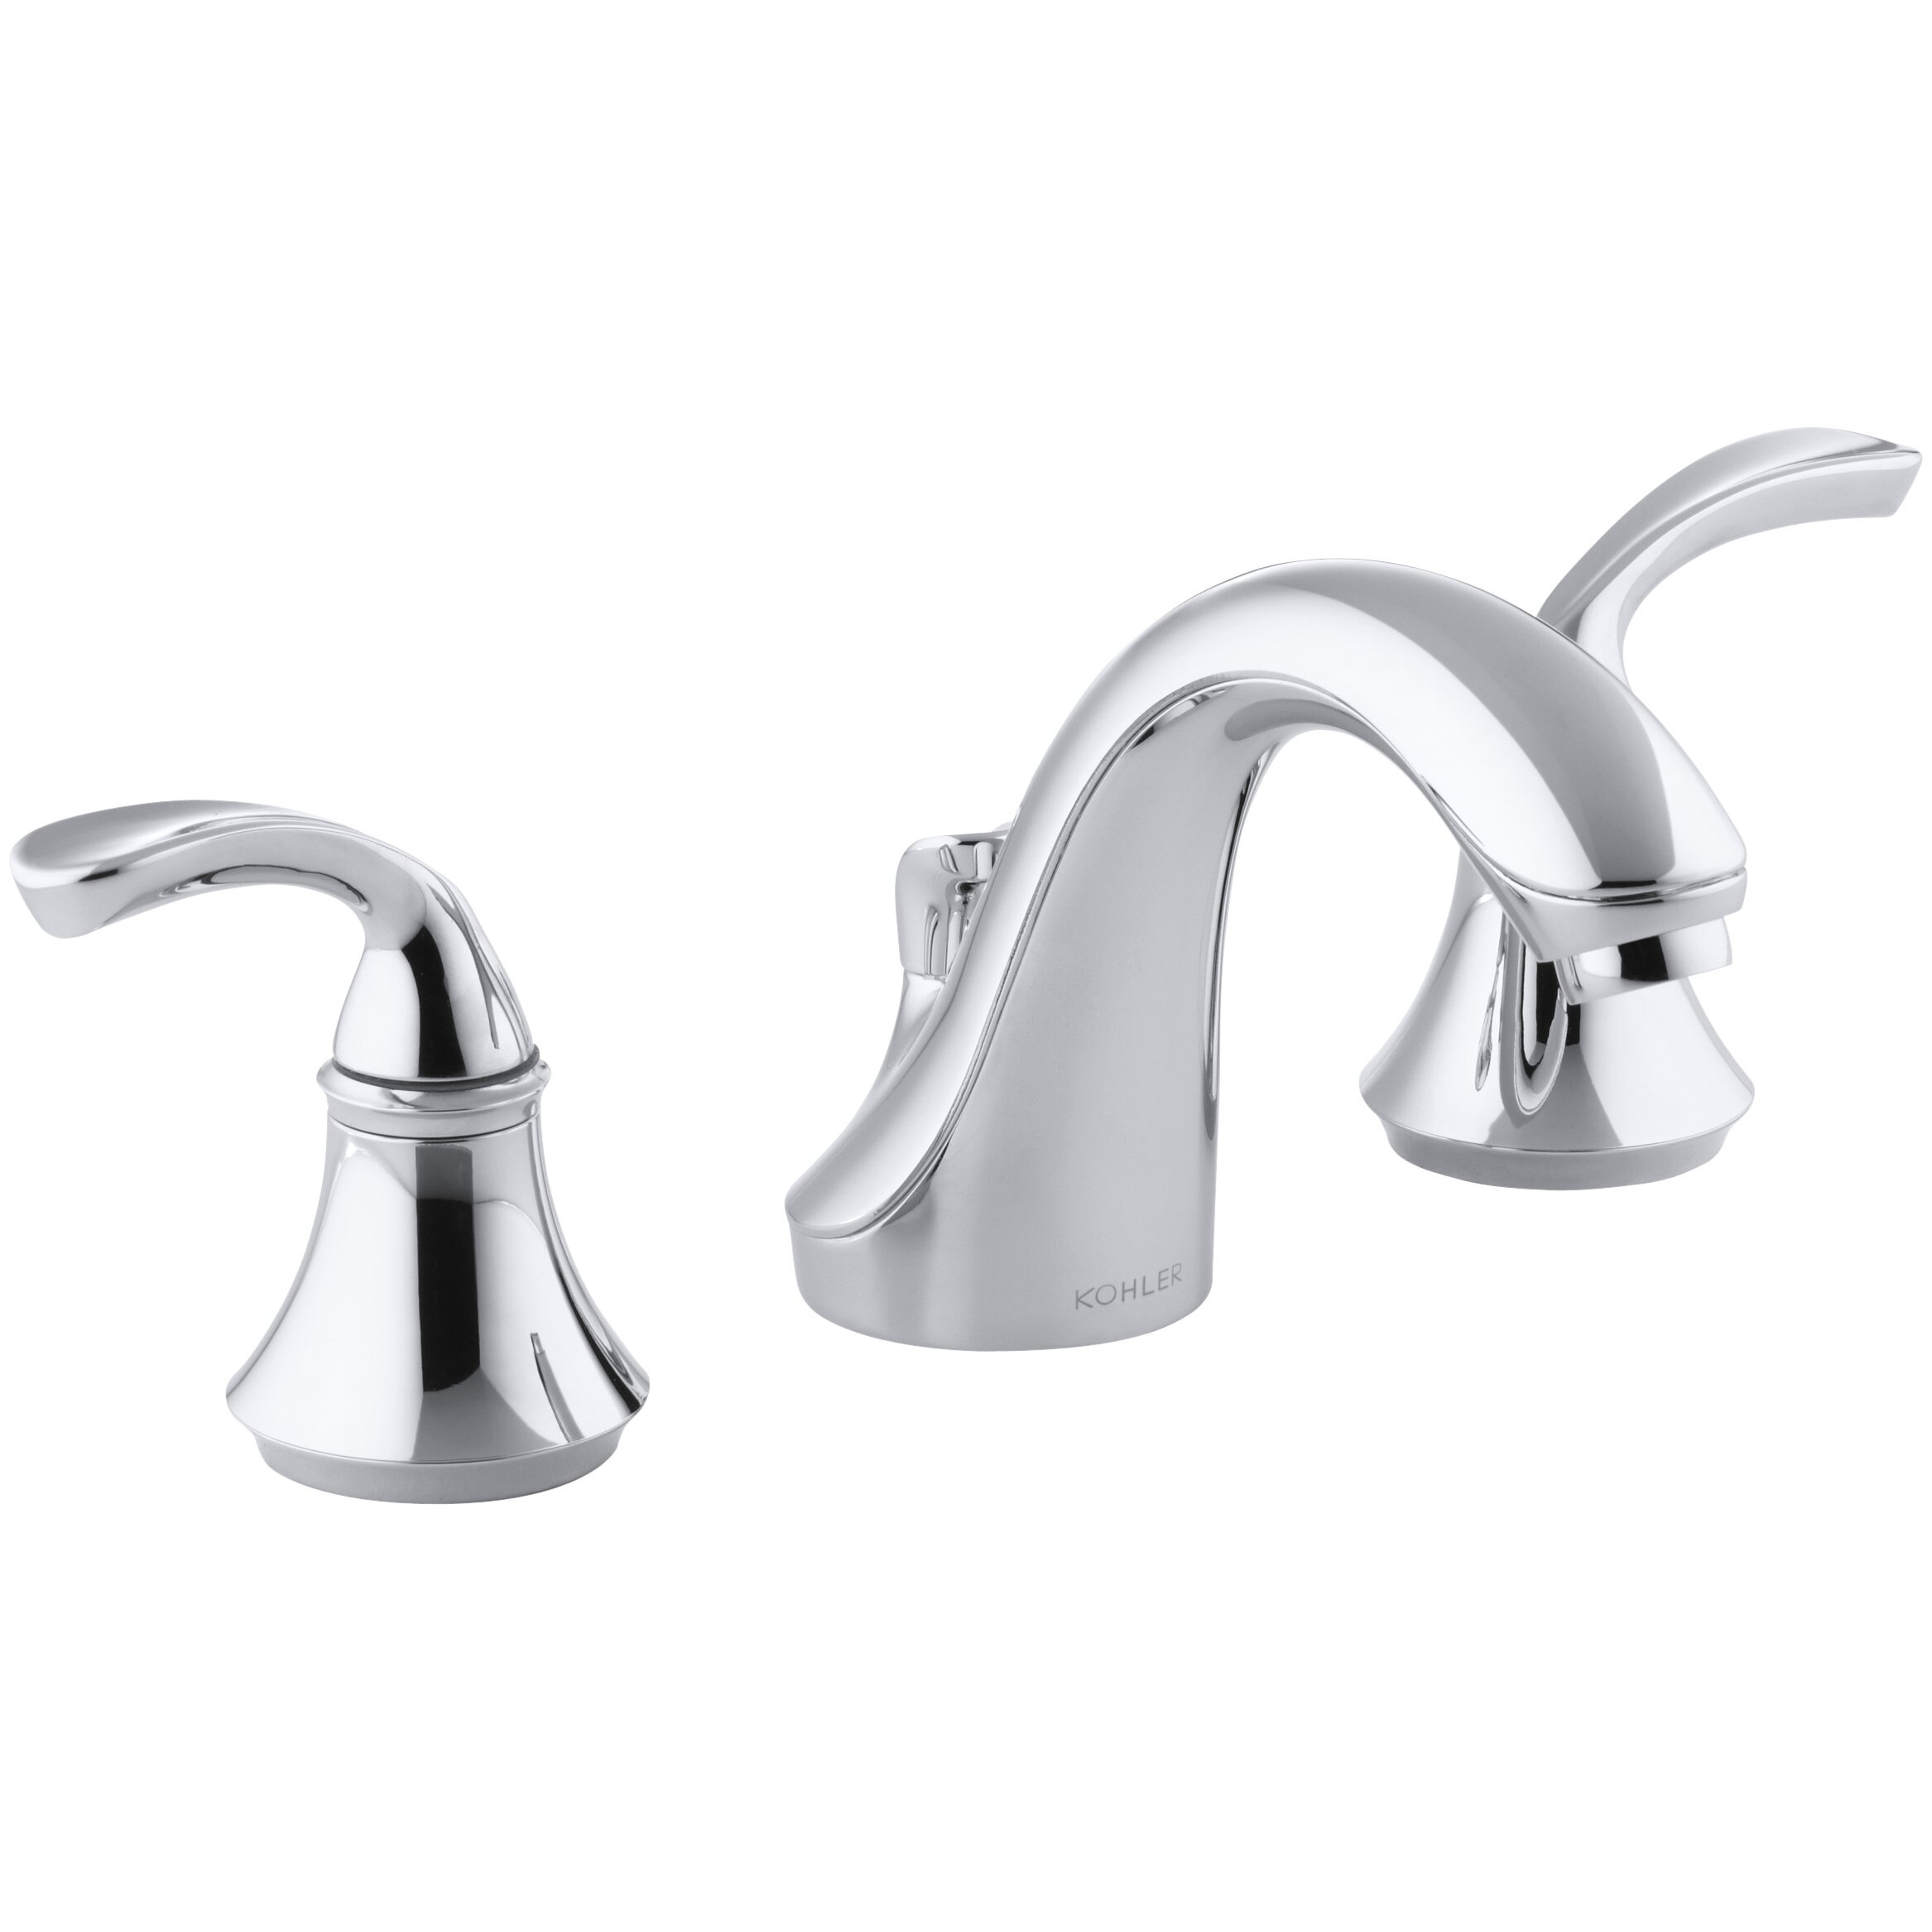 Kohler Fort Widespread Commercial Bathroom Sink Faucet With Sculpted Lever Handles Metal Drain